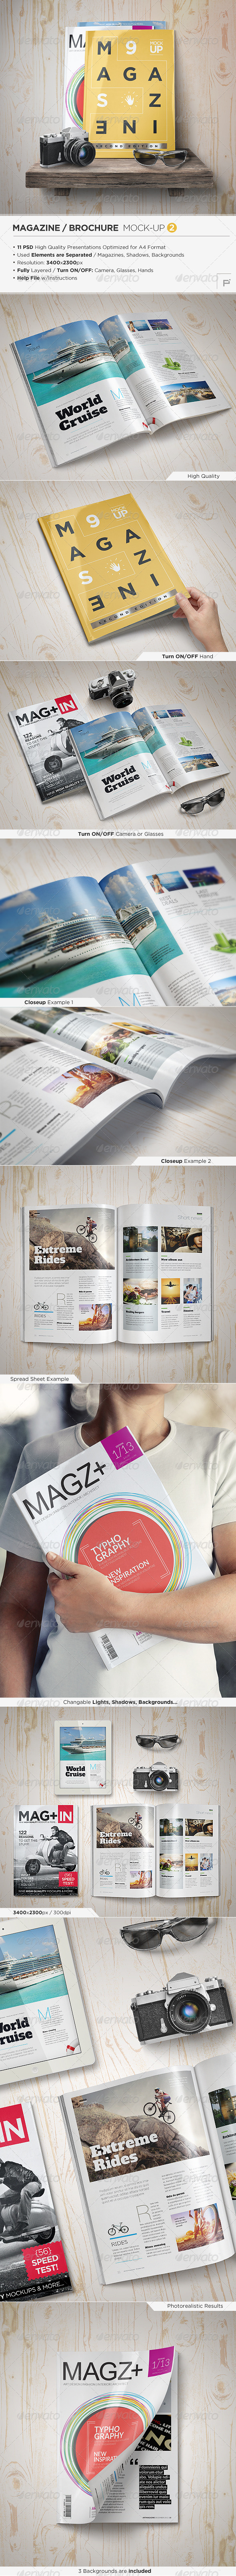 GraphicRiver Magazine Mock-Up Set 2 8759596